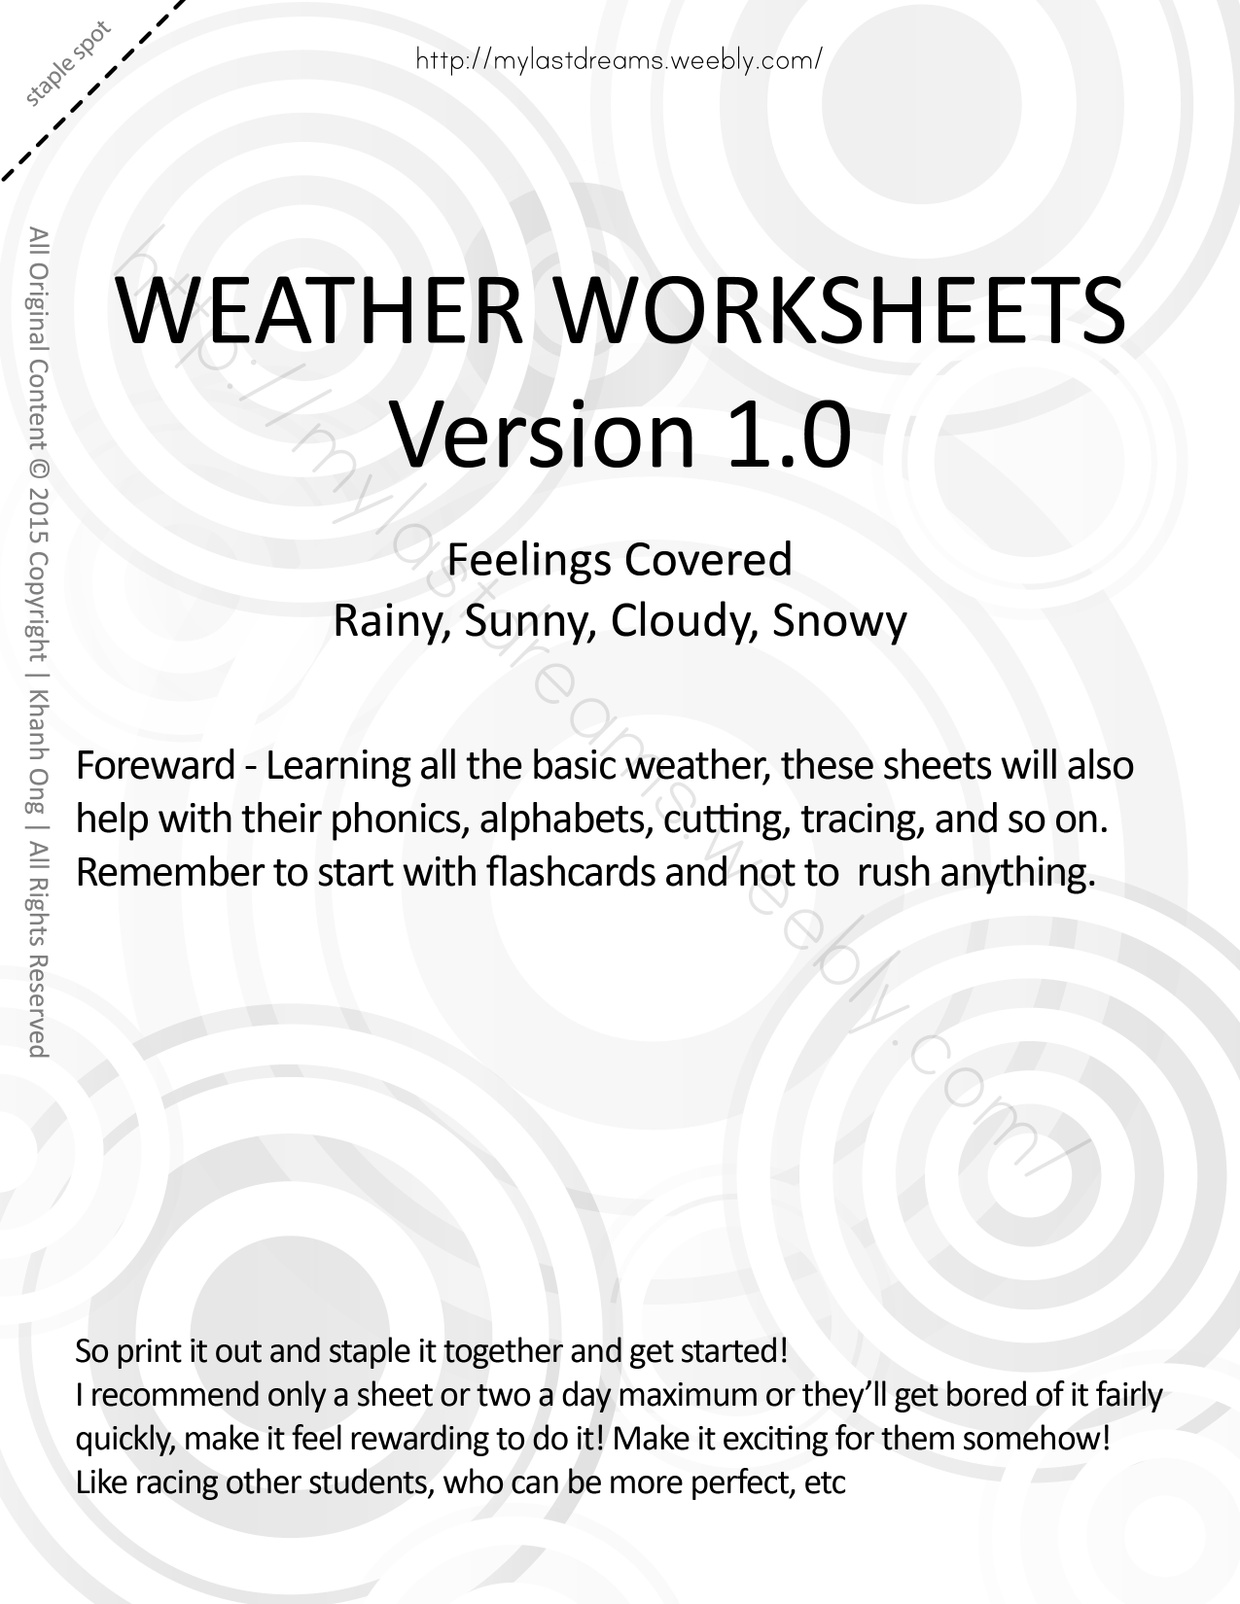 MLD - Basic Weather Worksheets - Full Set - Letter Sized